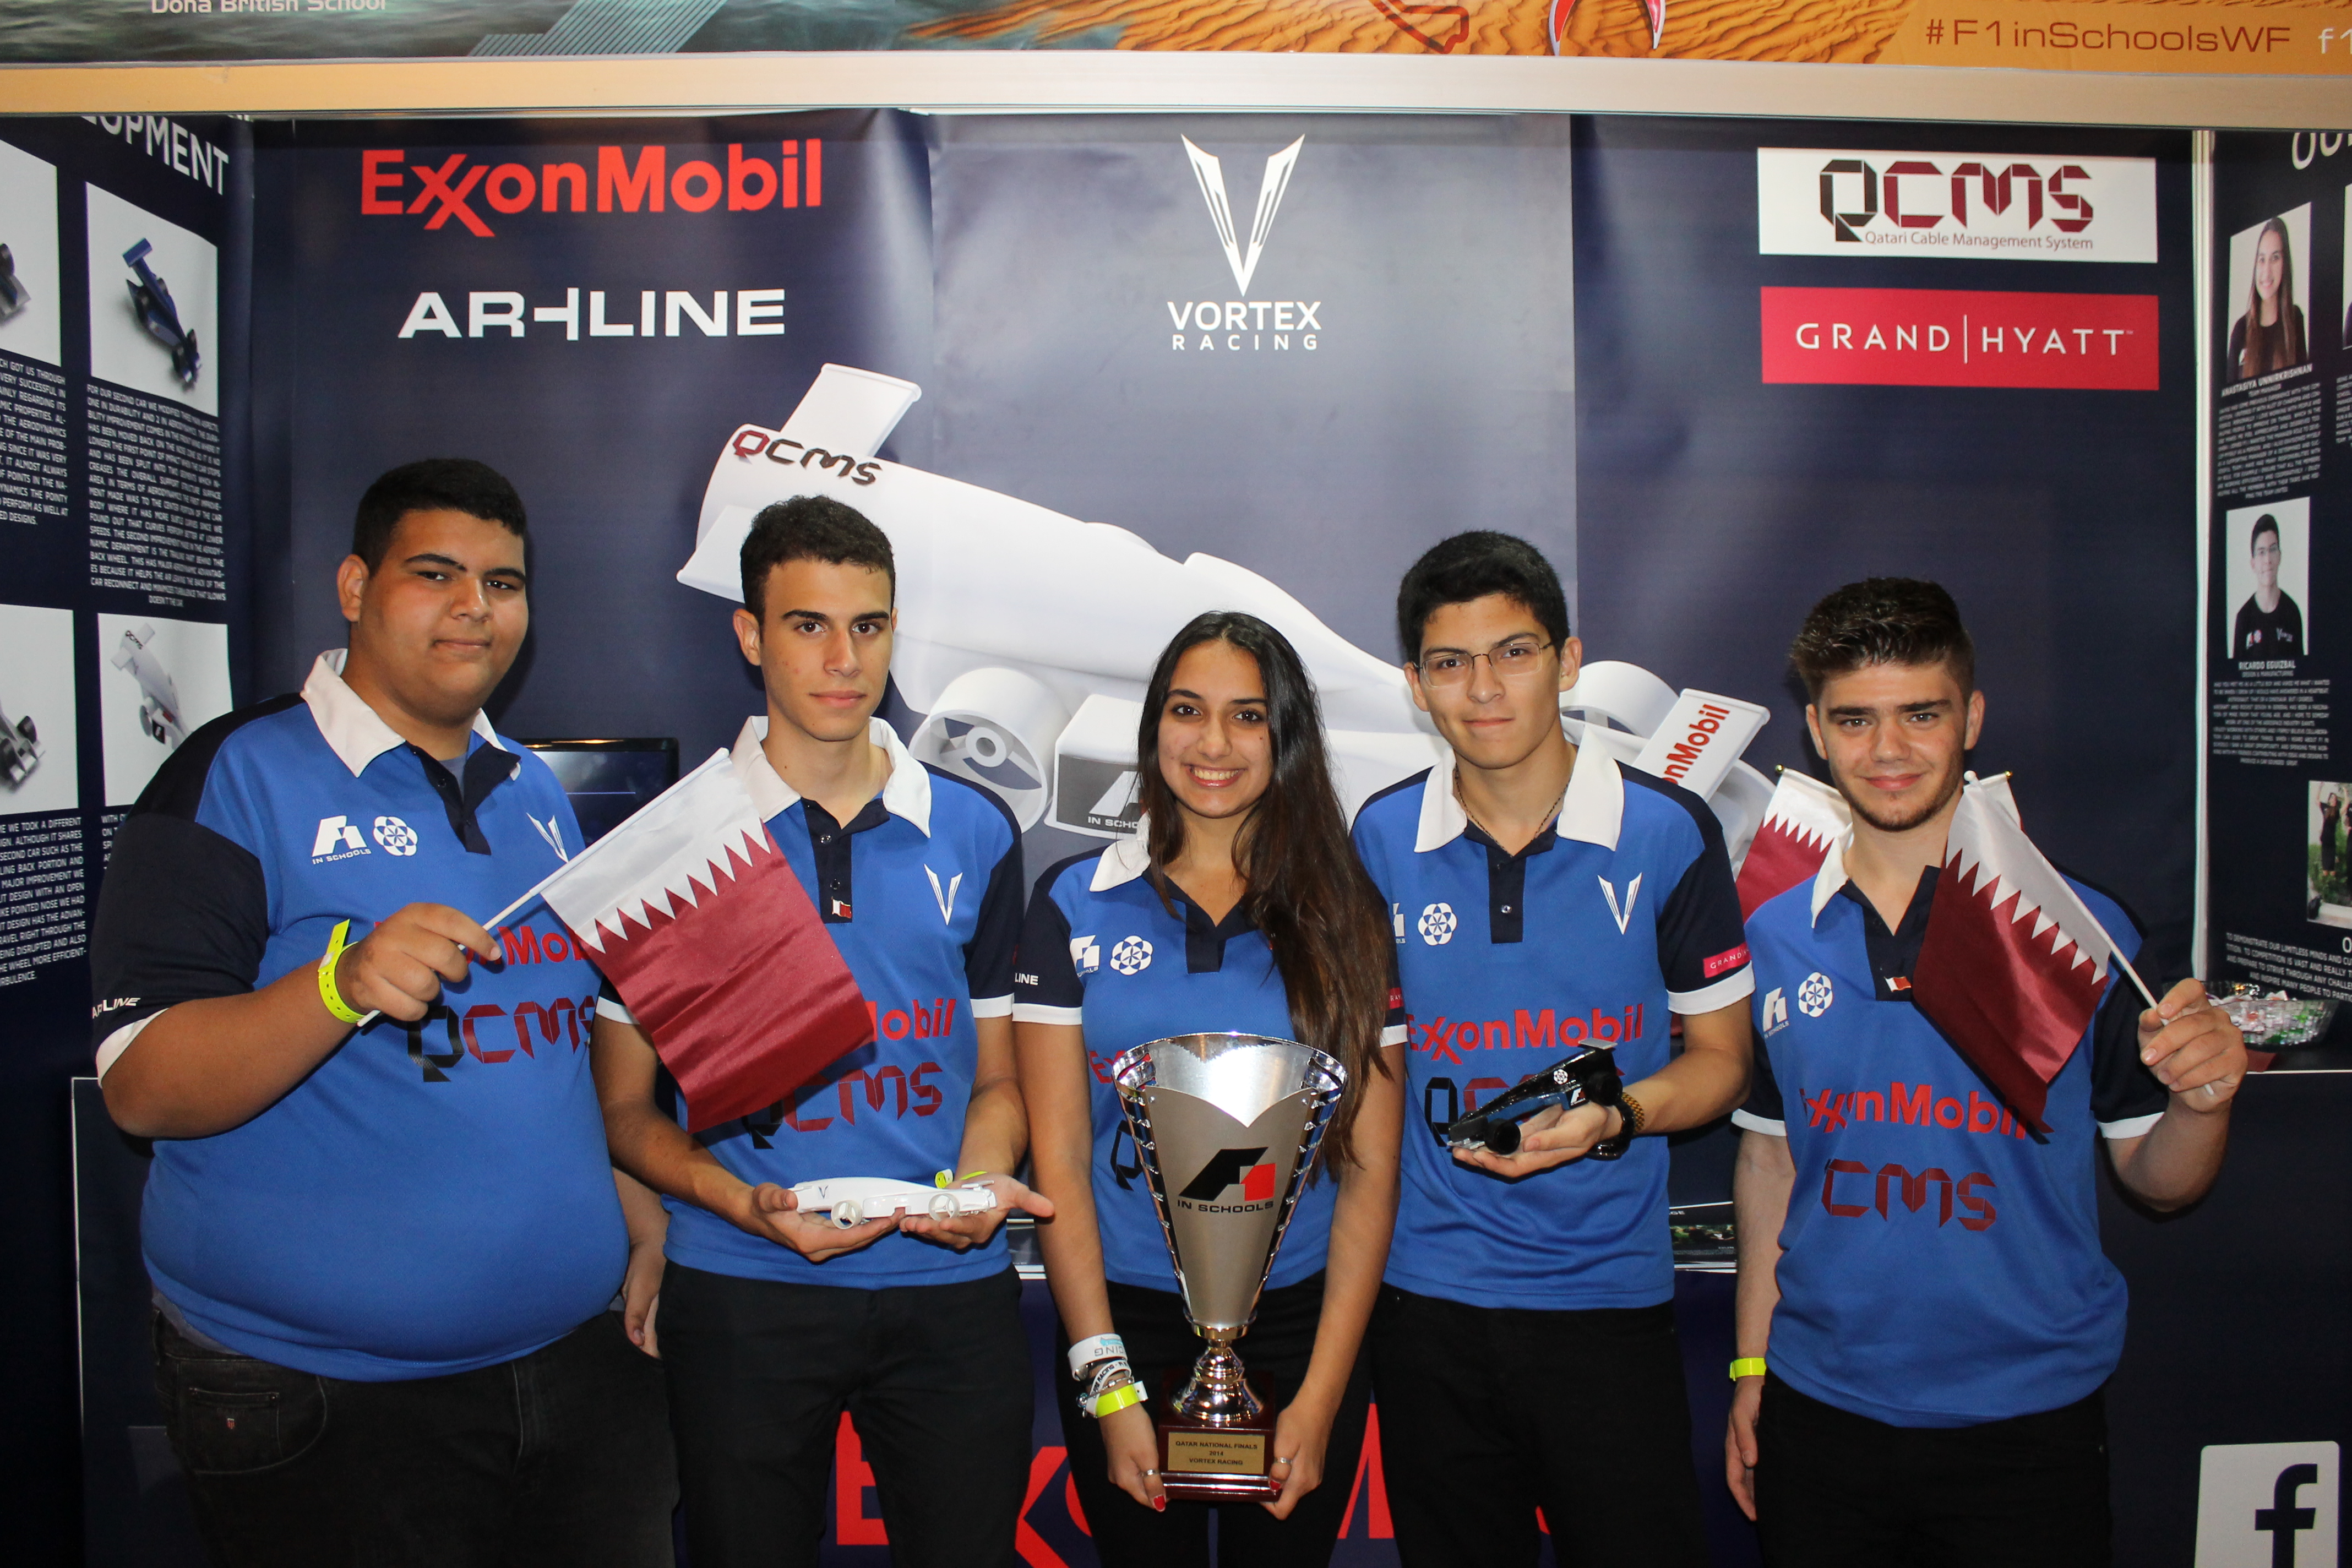 Vortex Team in Abu Dhabi 2014